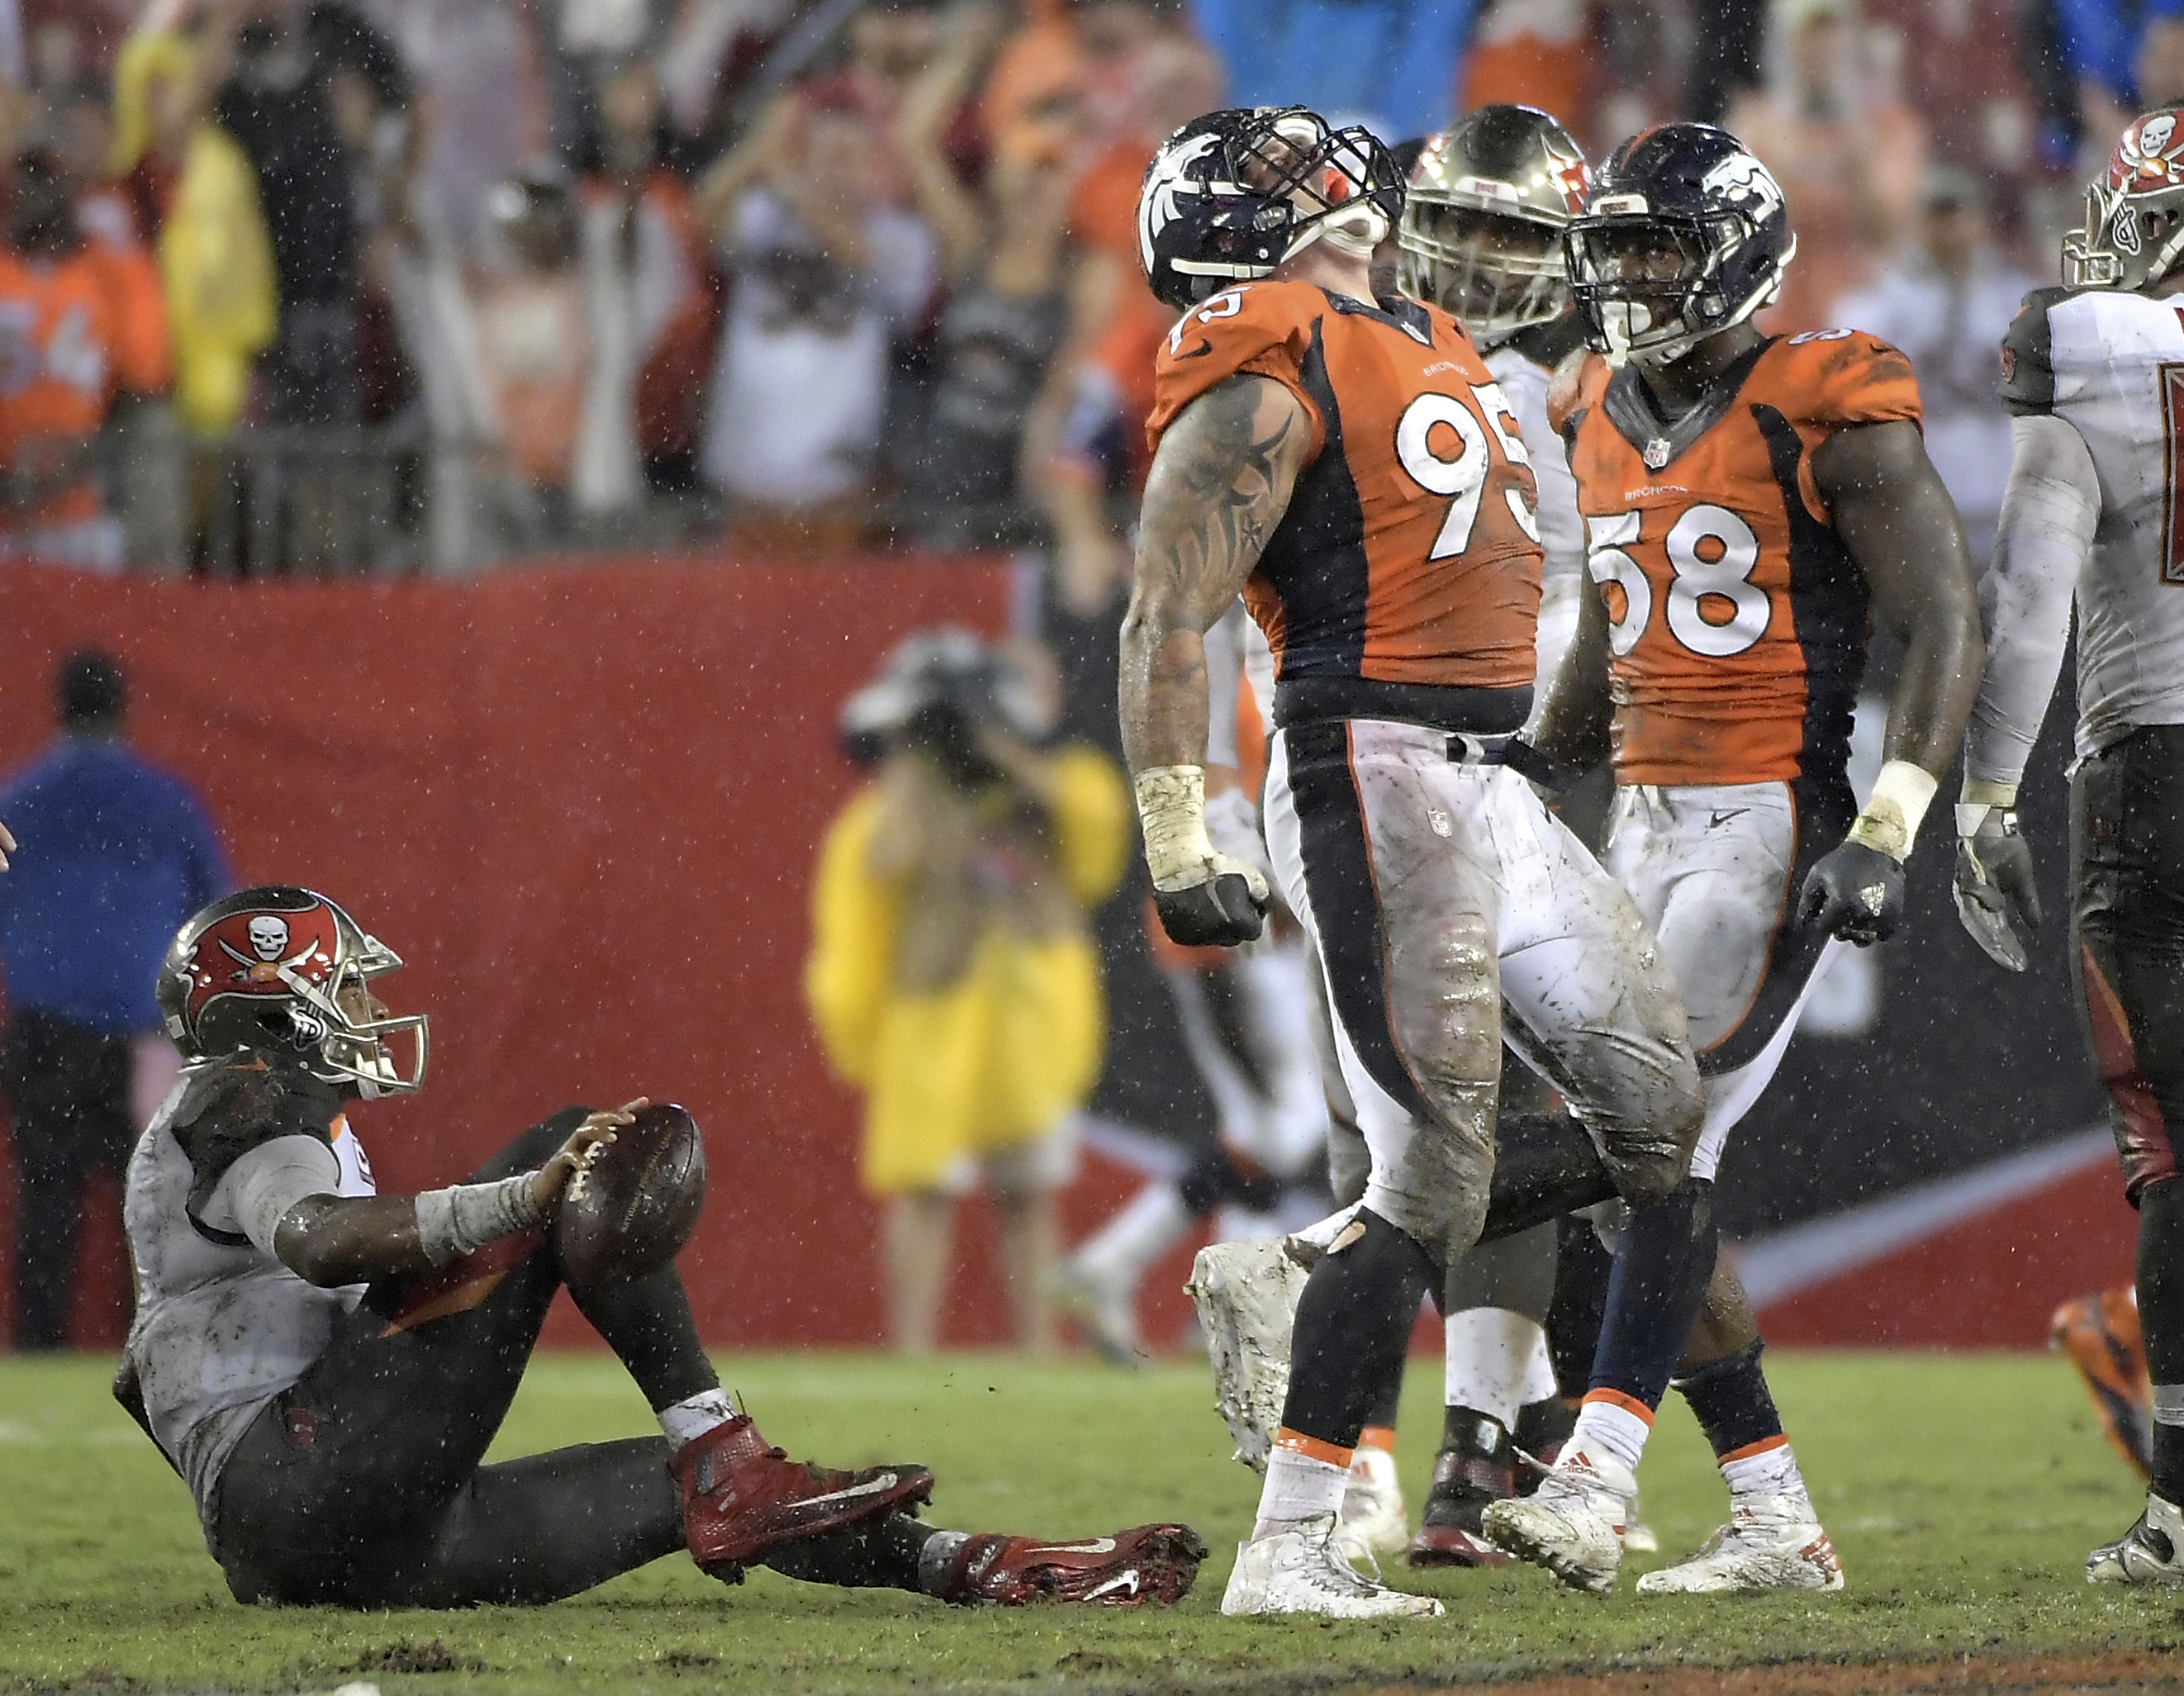 FILE - In this Oct. 2, 2016, file photo, Denver Broncos defensive end Derek Wolfe (95) celebrates after sacking Tampa Bay Buccaneers quarterback Jameis Winston, left, during an NFL football game in Tampa, Fla. Wolfe is the unsung member of Denver's dazzli